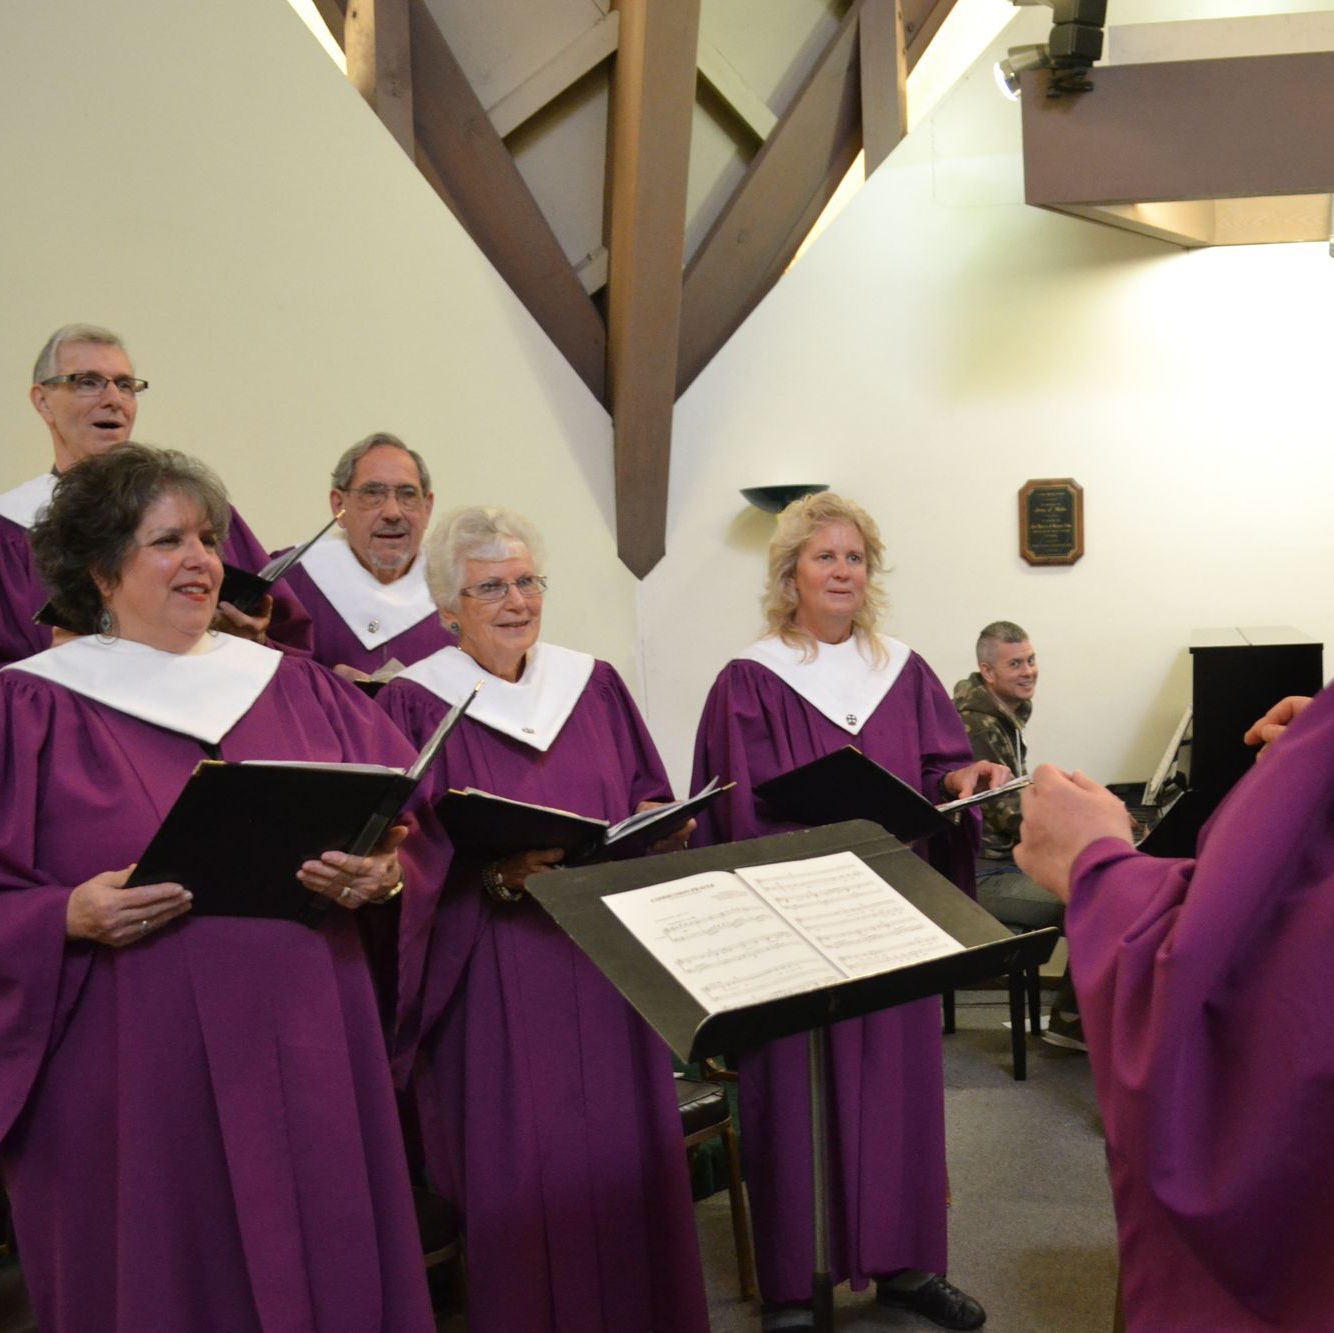 UNited church of christ choir singing a hymn